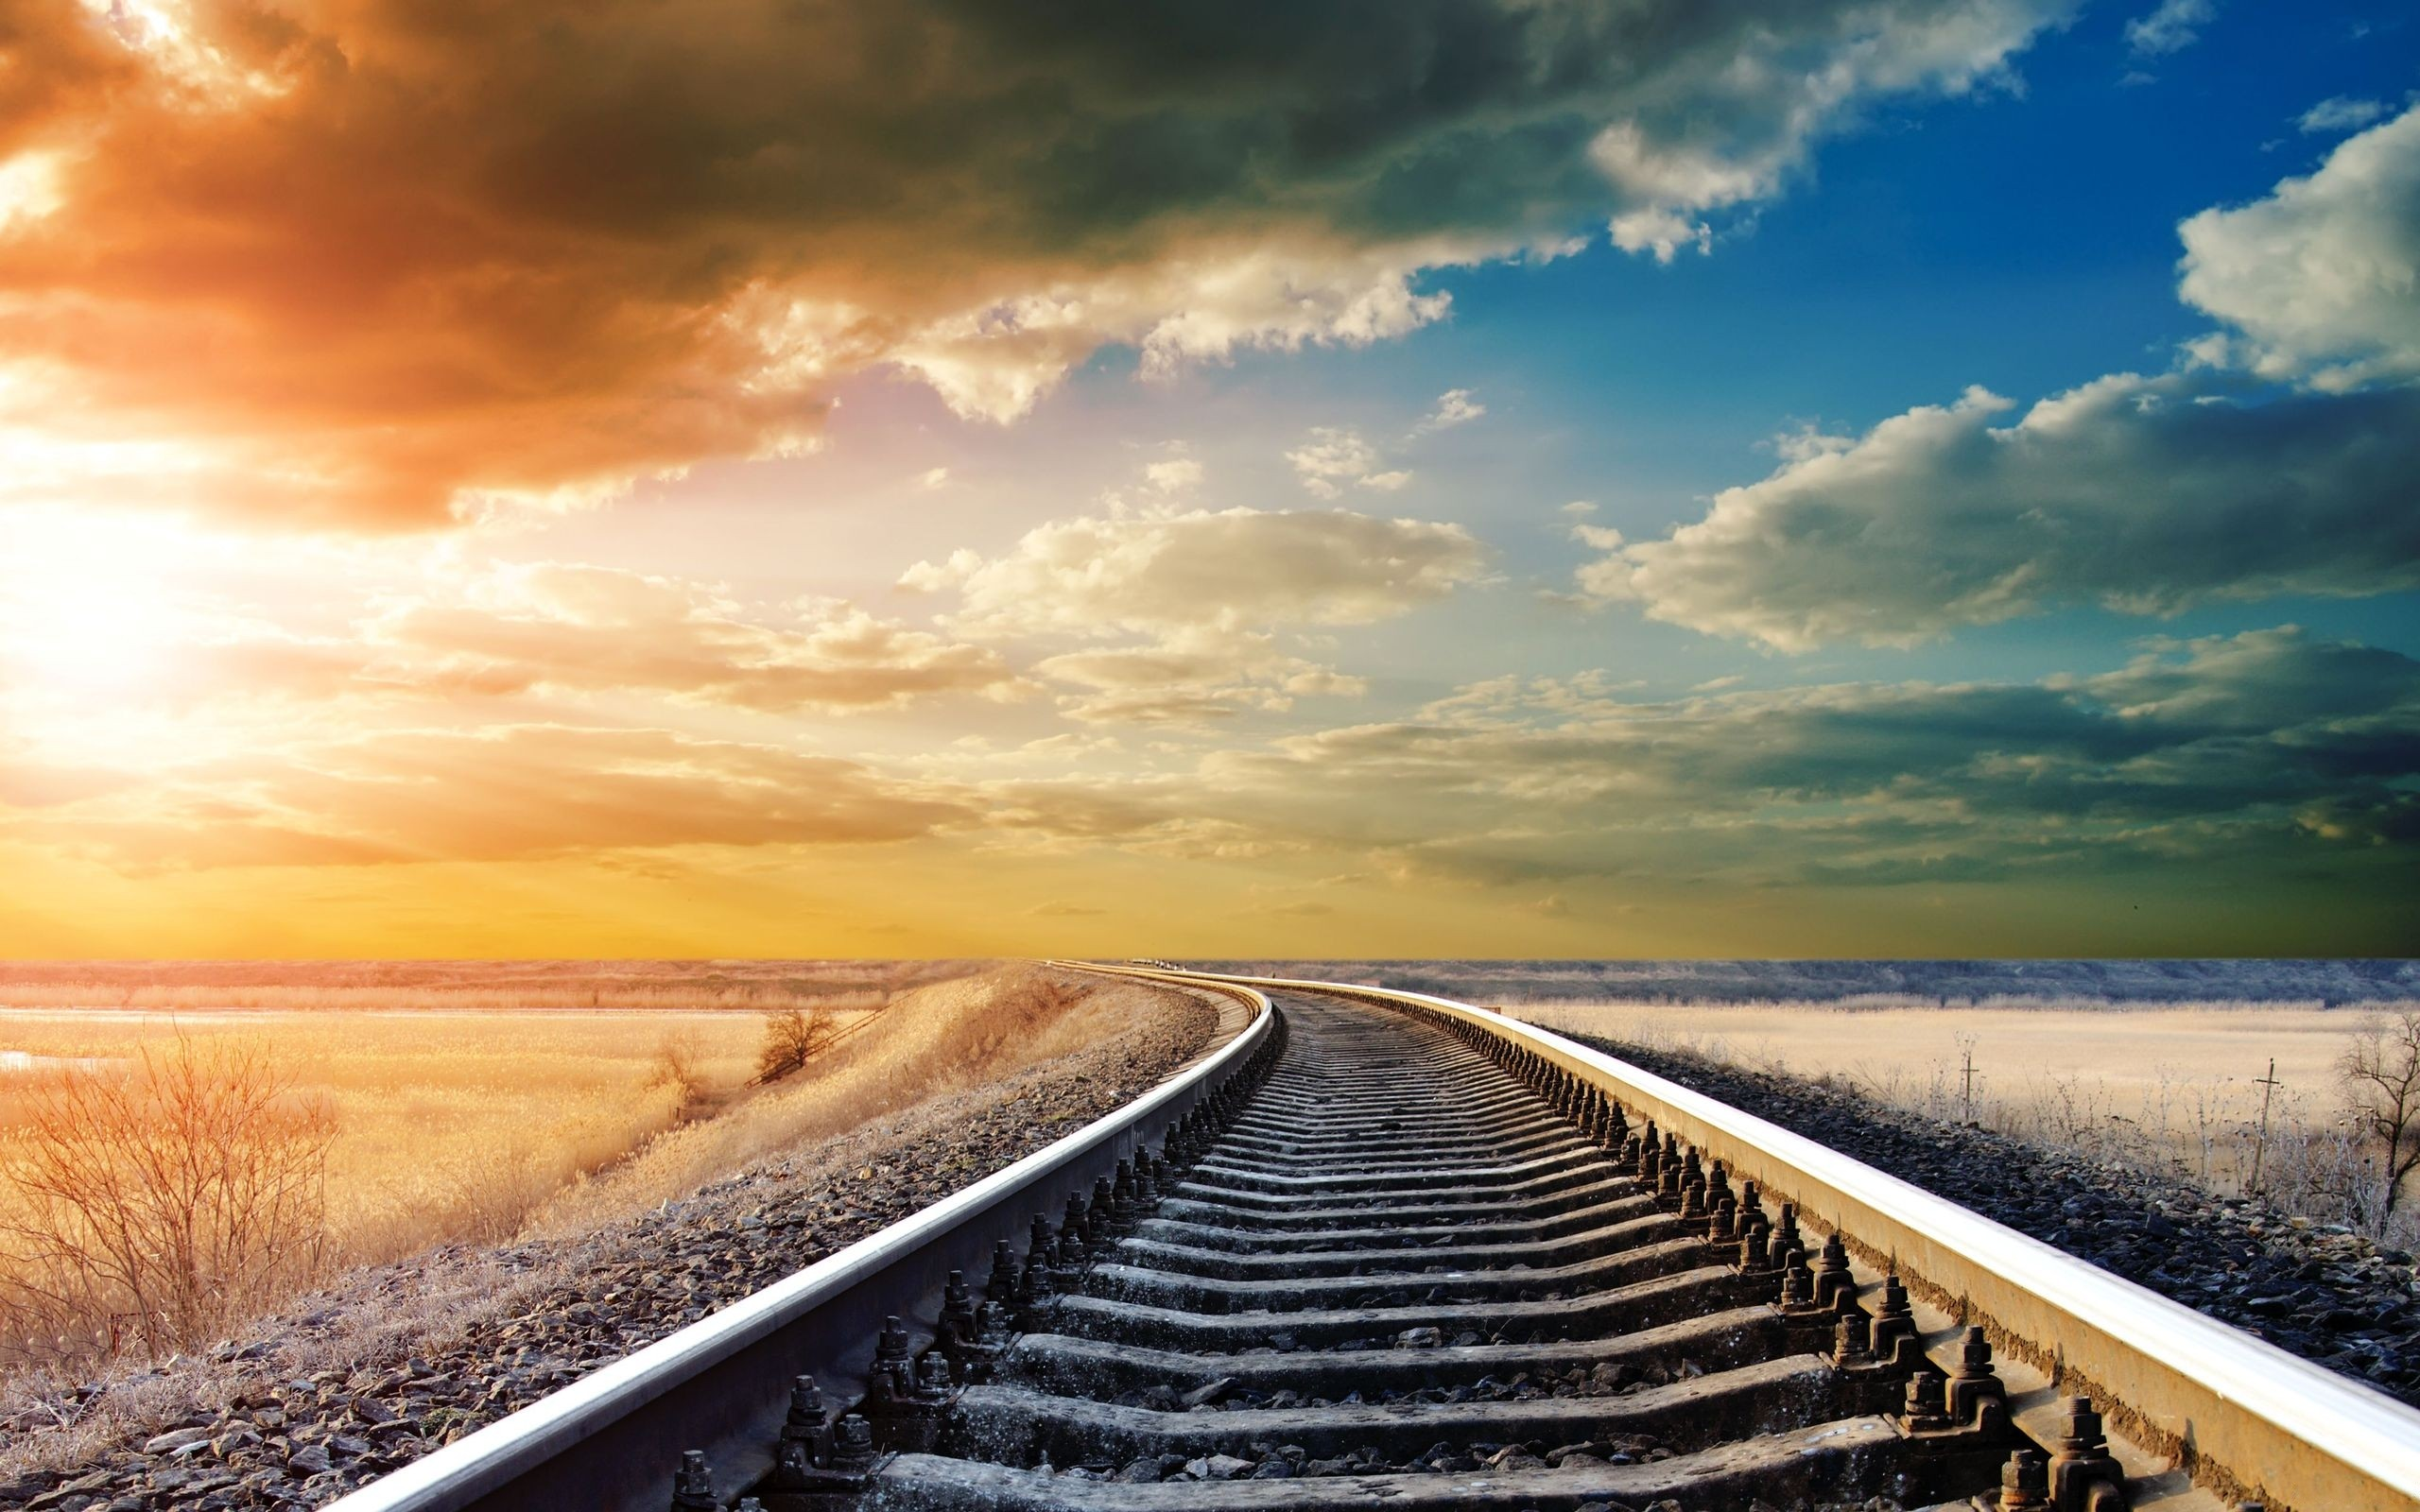 The railway stretches into the distance, a beautiful sunset.